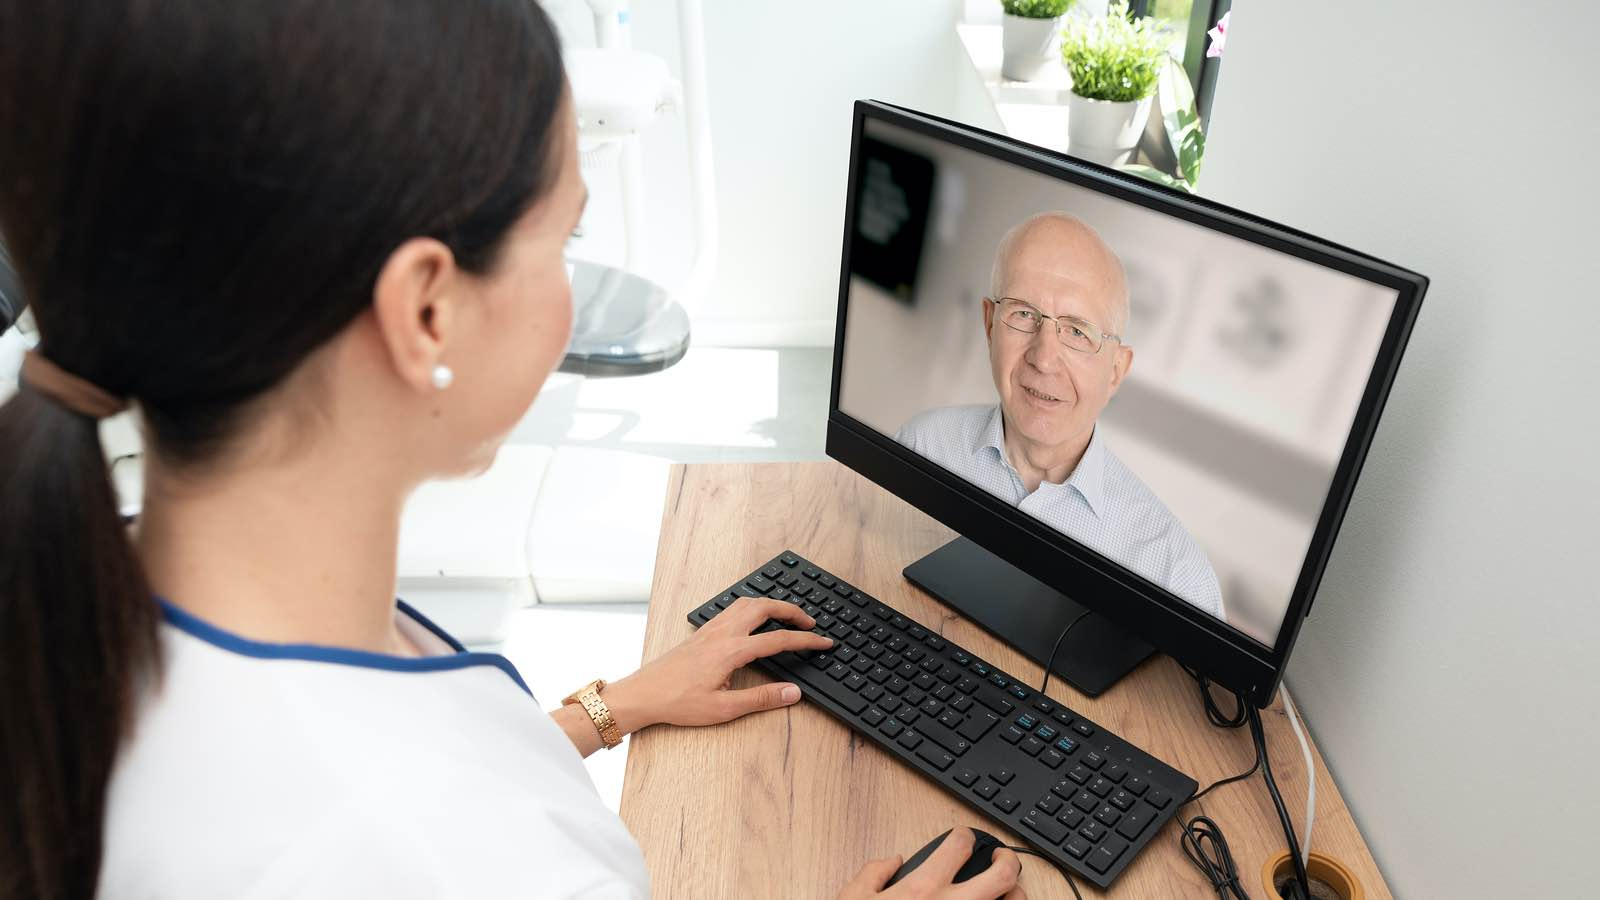 Introduction to Telehealth - An introduction to the use of digital communication technology in physiotherapy practice